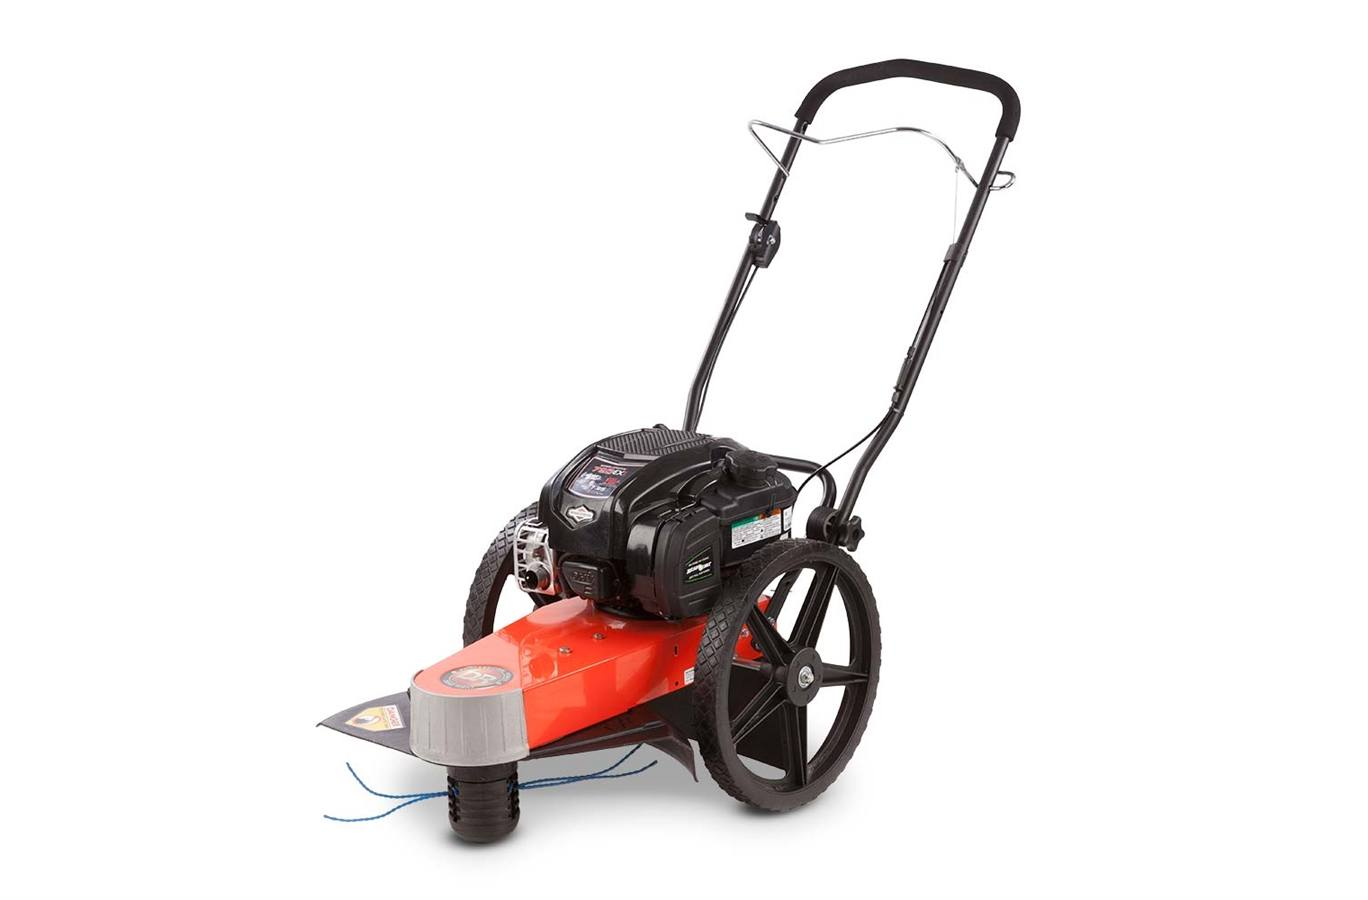 2018 DR Power TR4725 DR Trimmer/Mower